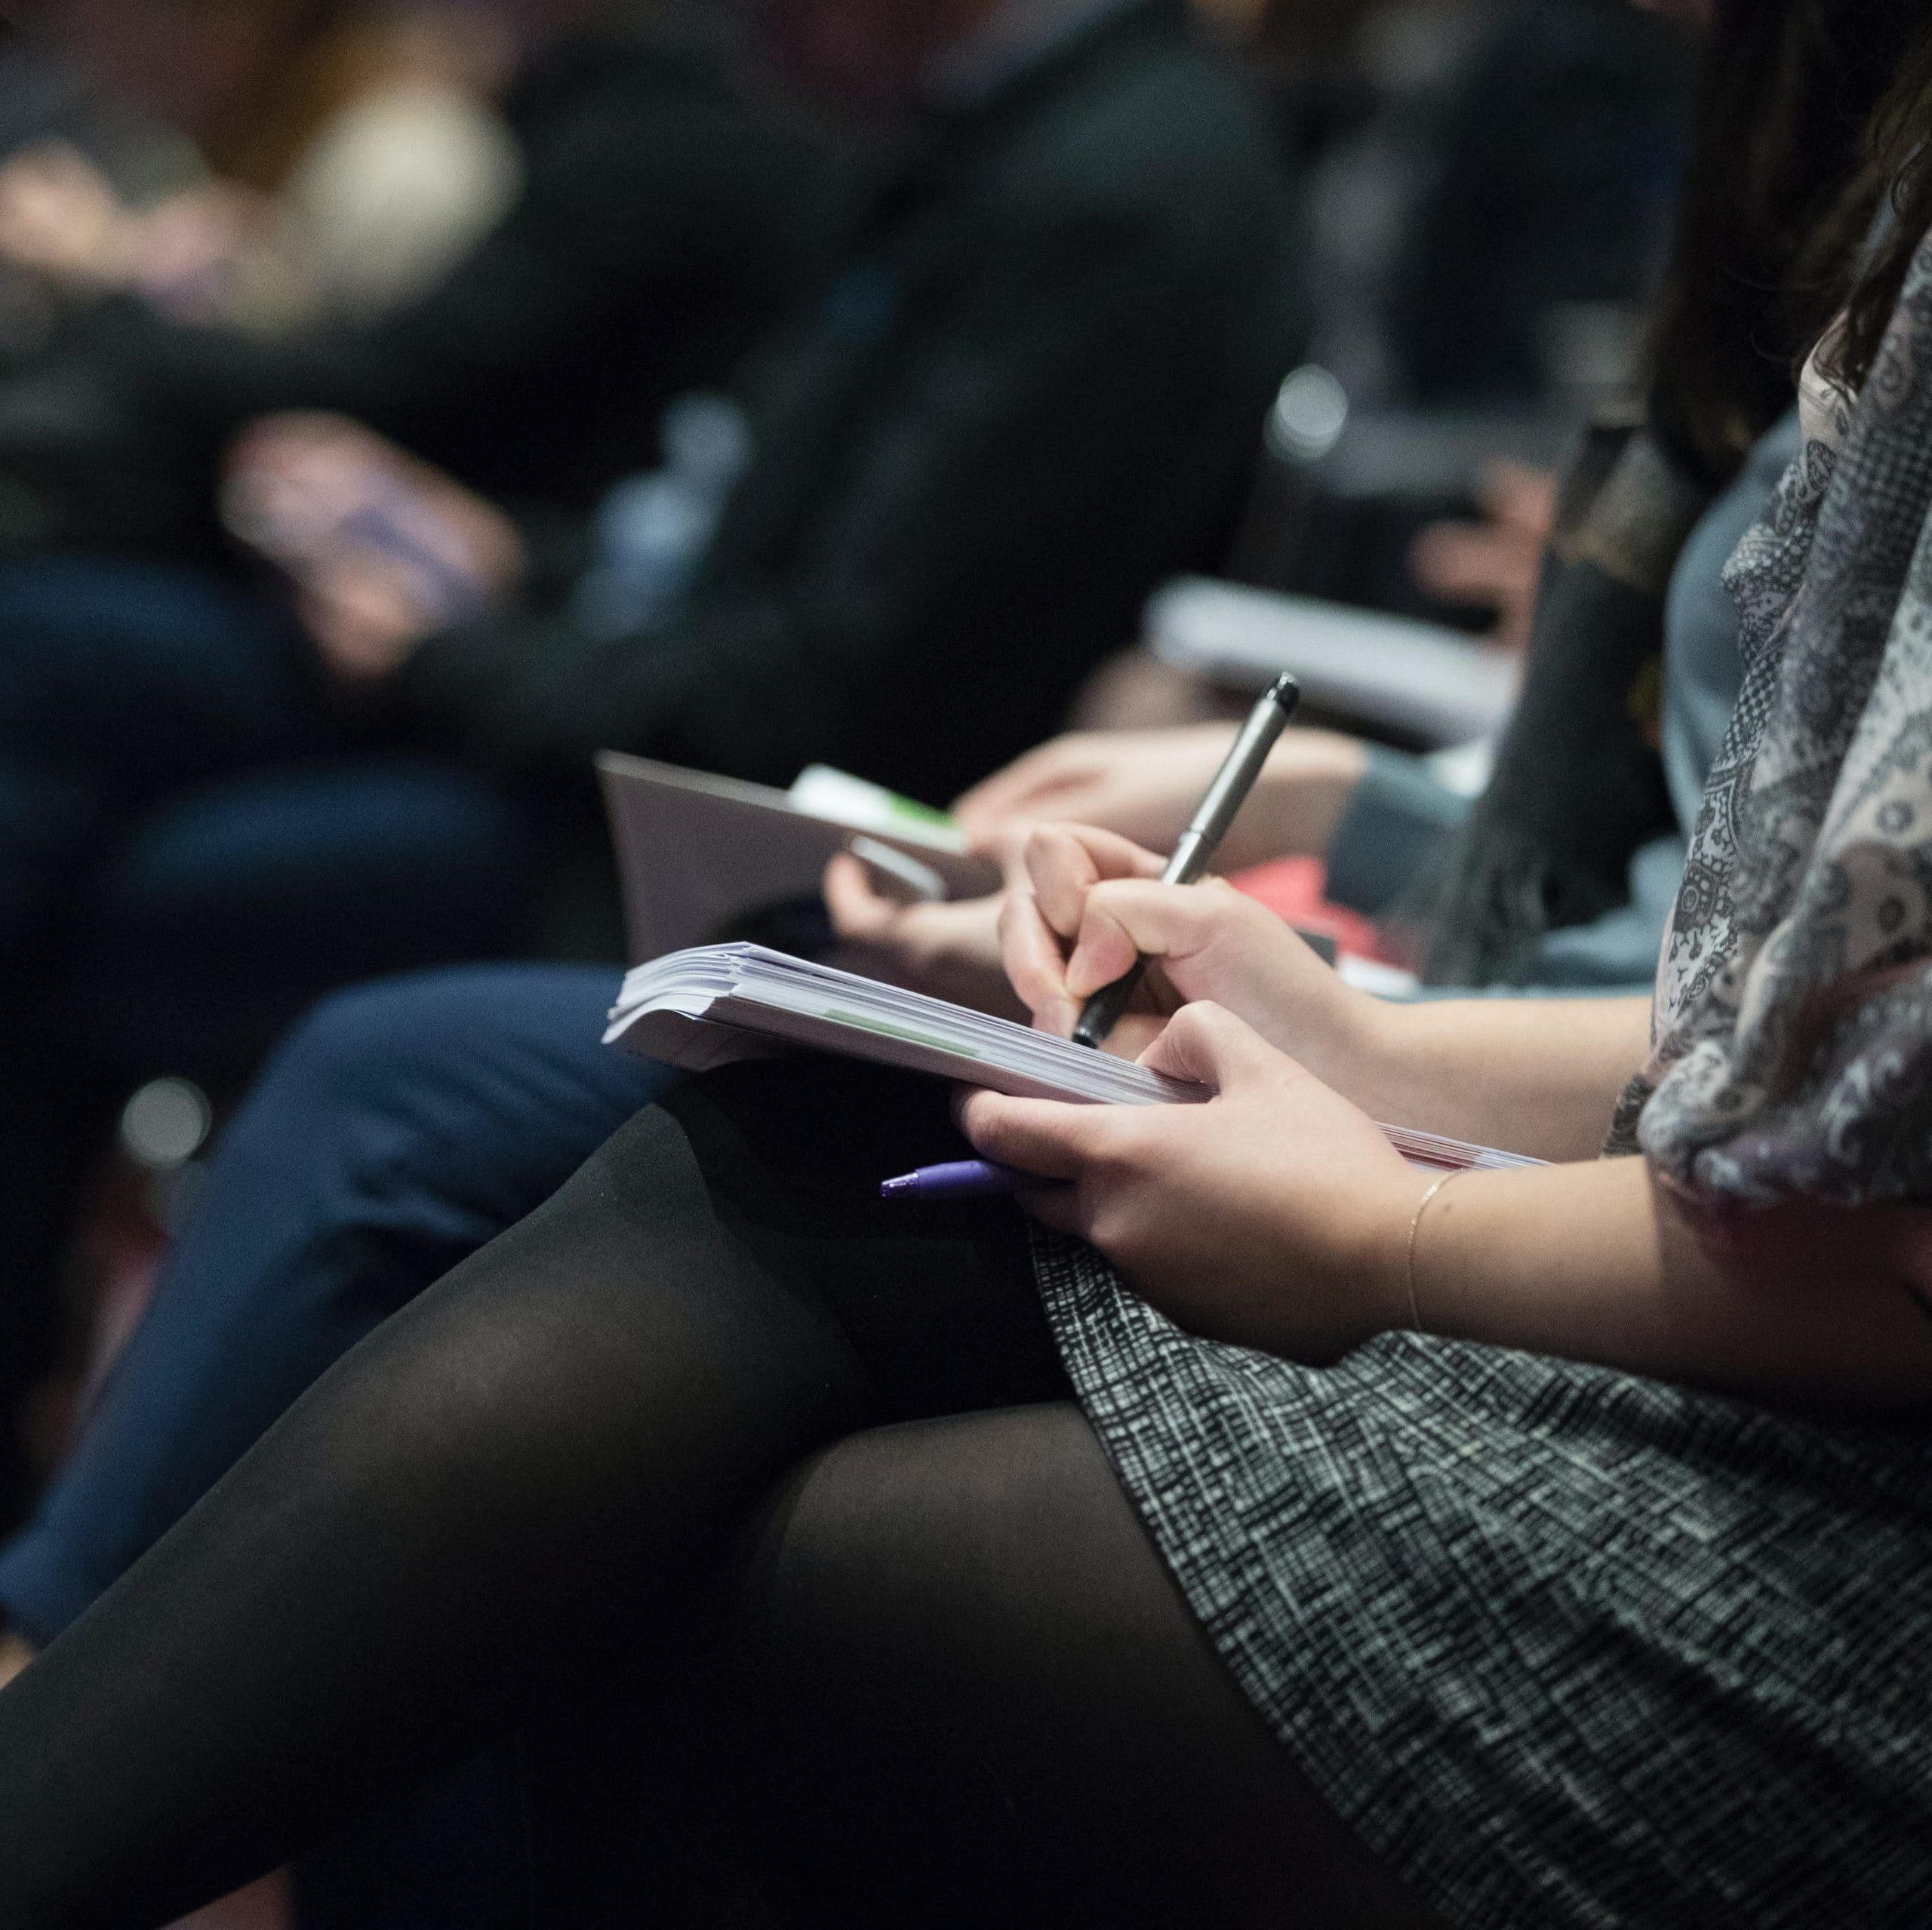 A person in the foreground wearing a skirt and tights takes notes while others in the background listen during a lecture.